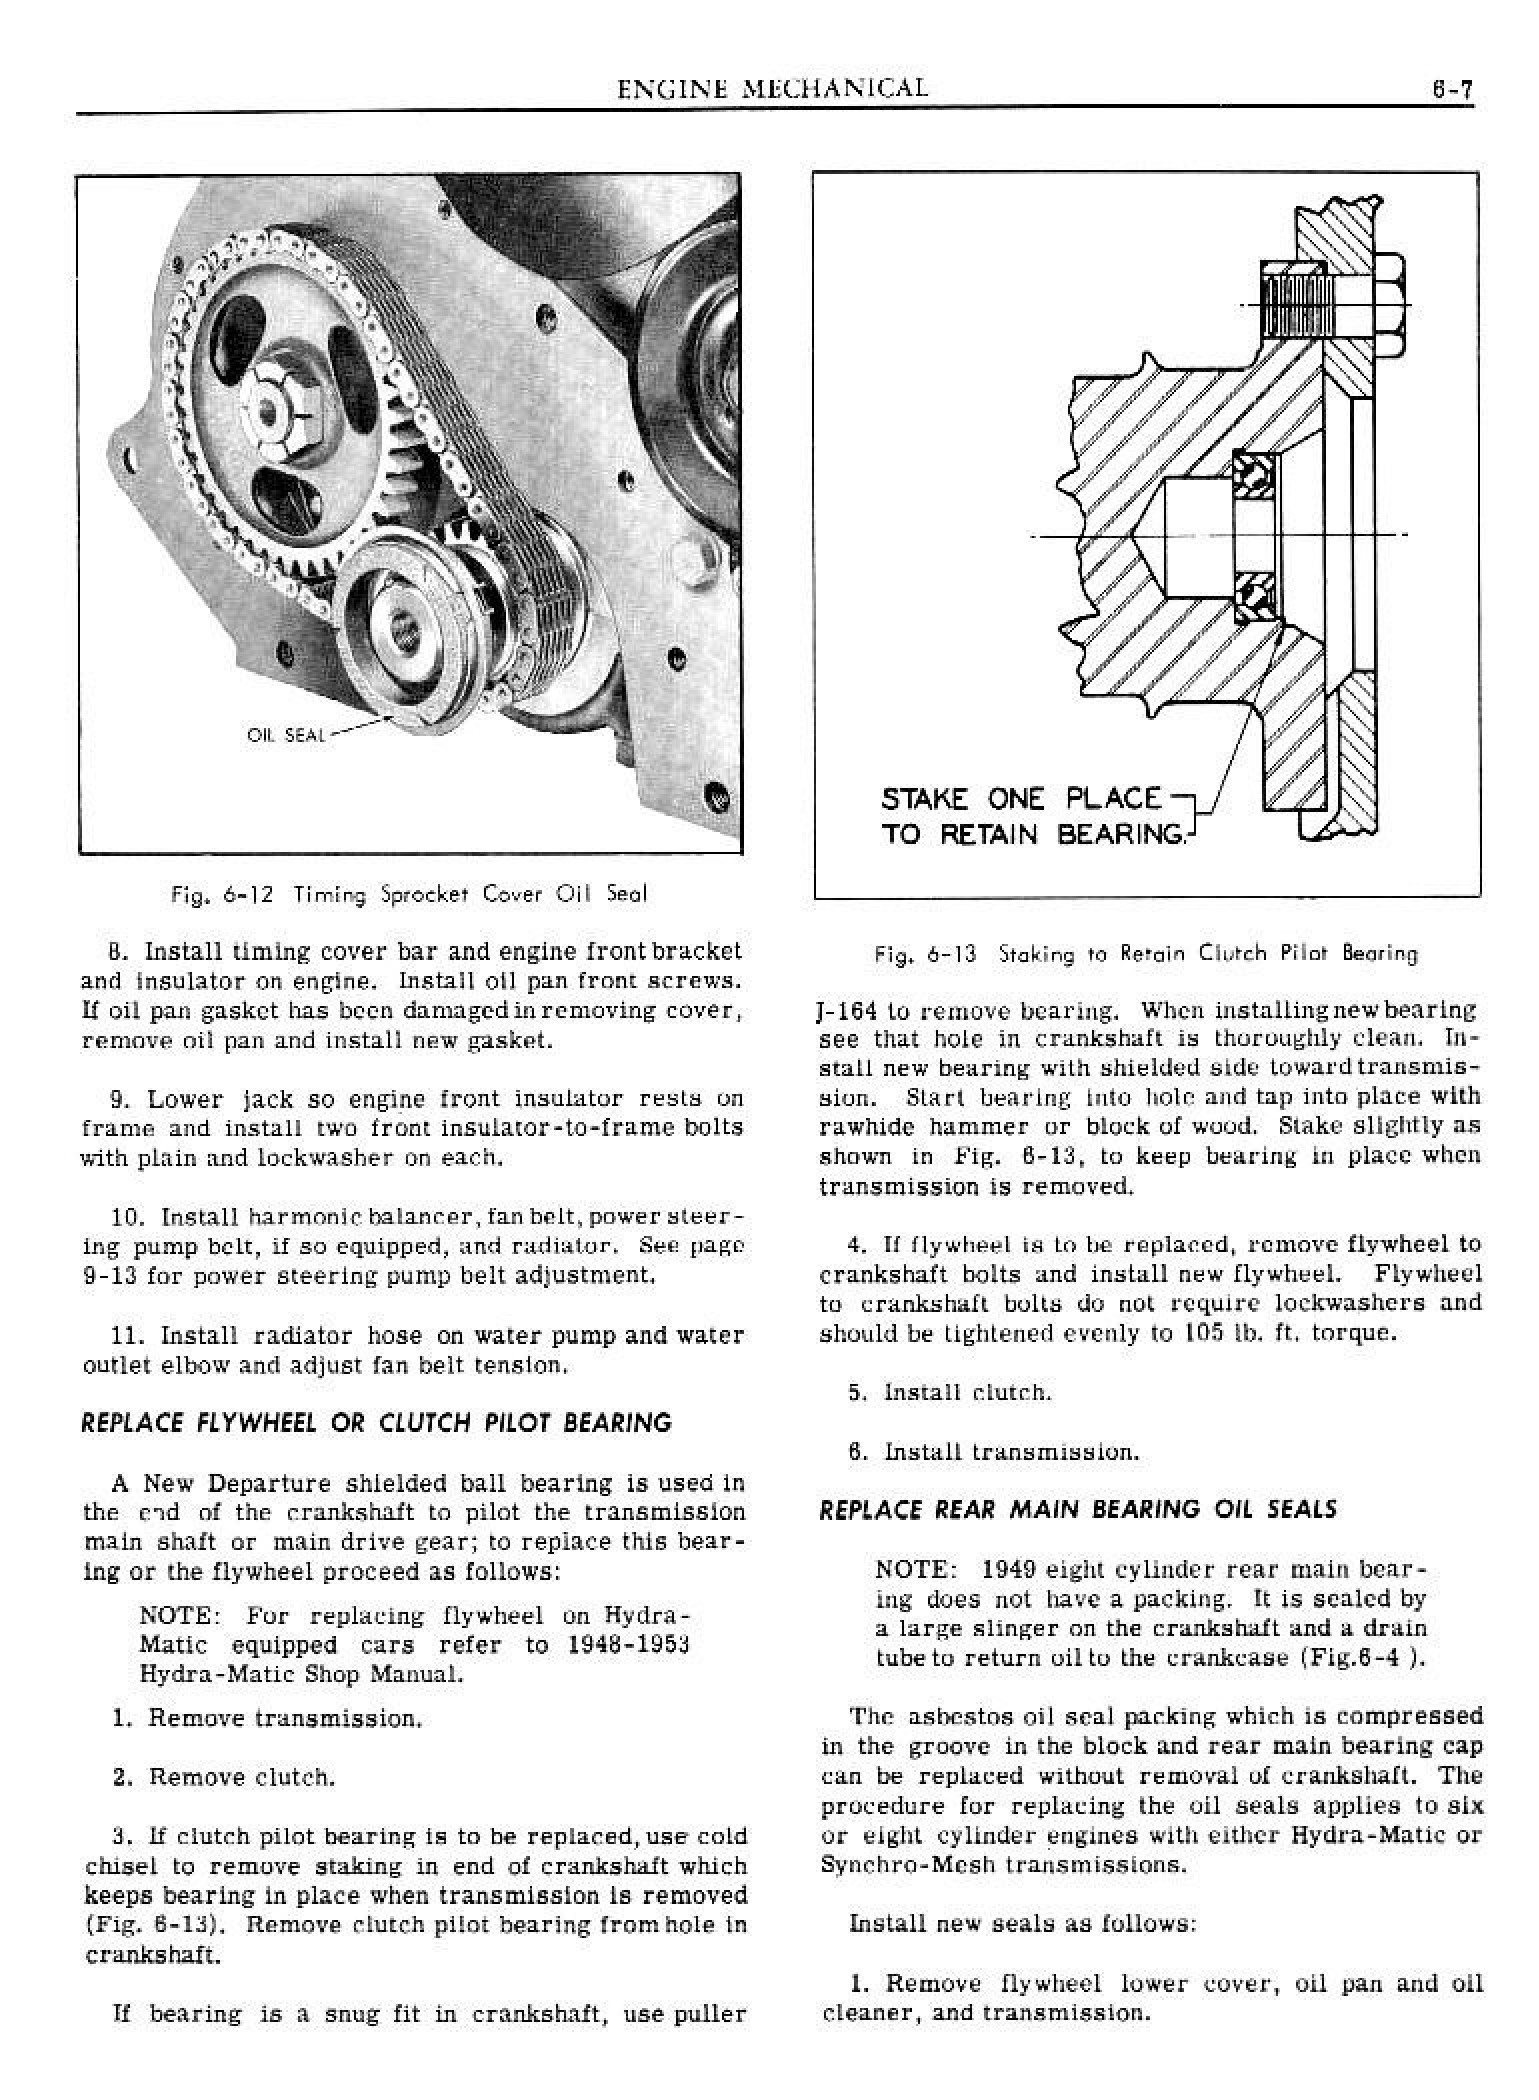 1949 Pontiac Shop Manual- Engine Mechanical Page 7 of 26